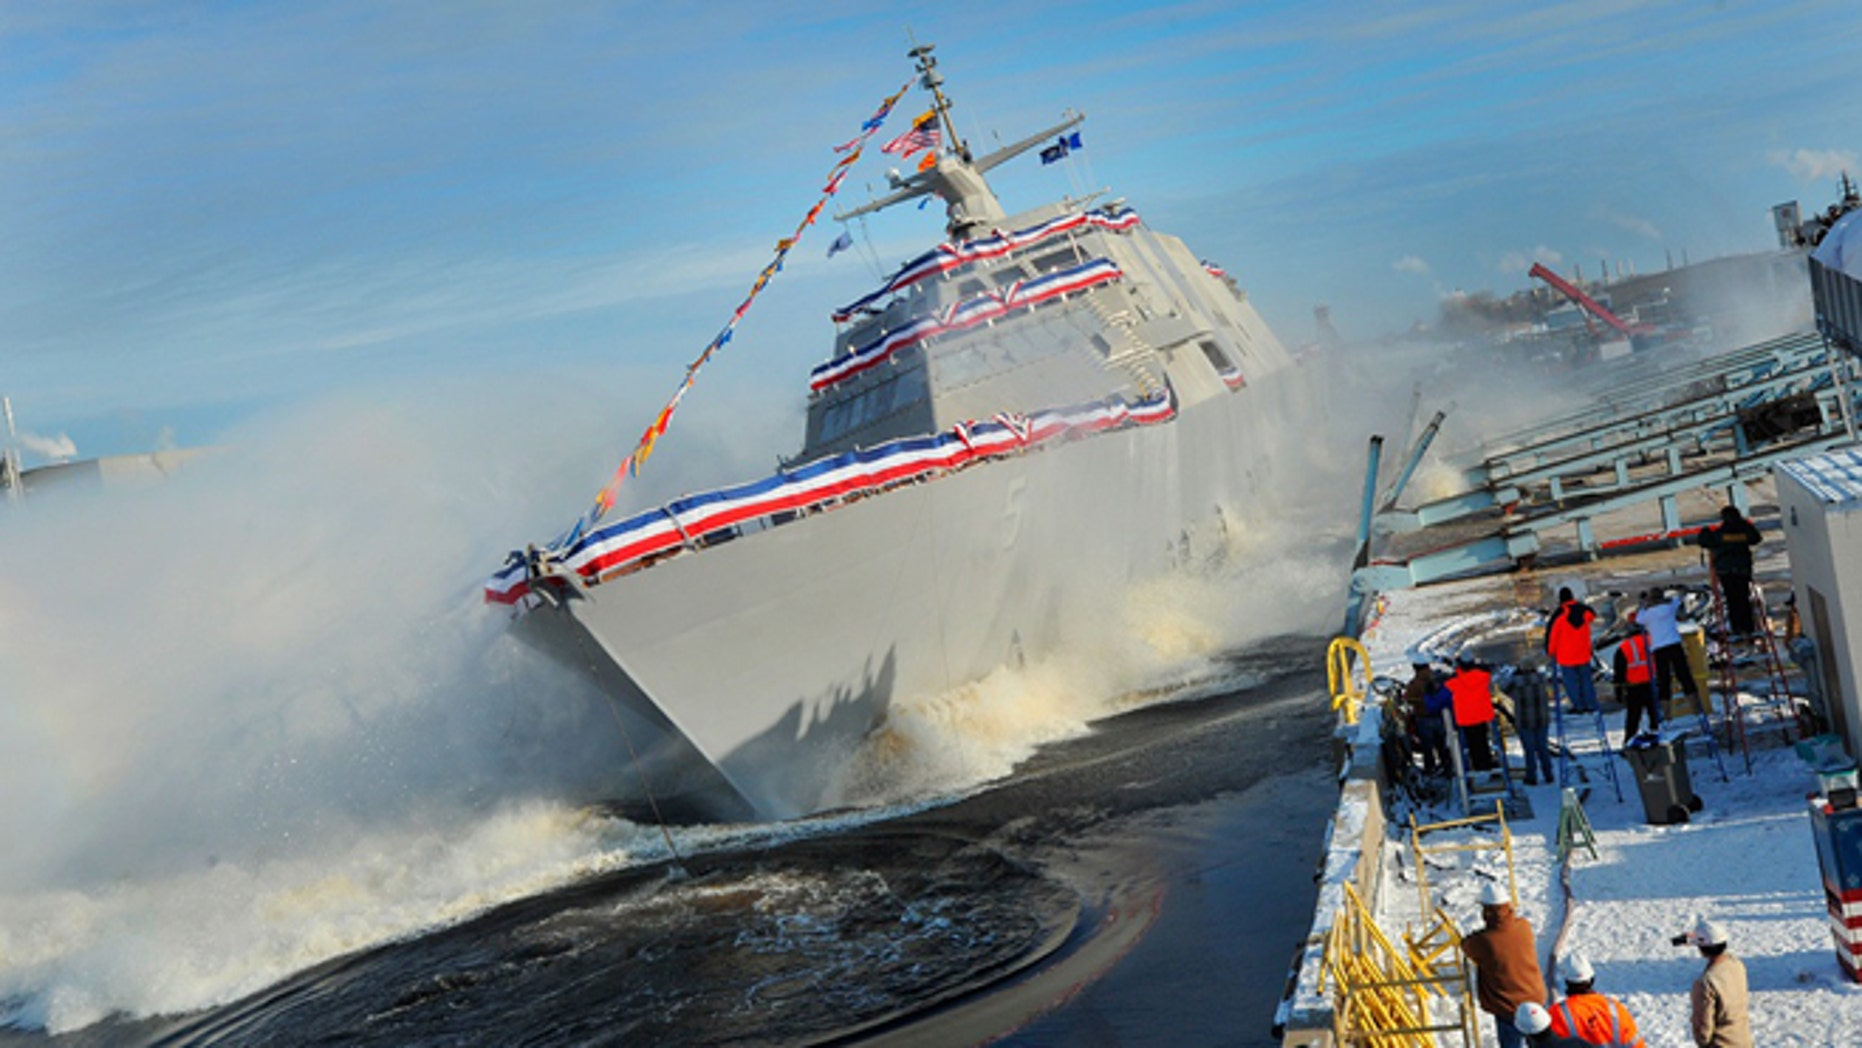 The littoral combat ship Pre-Commissioning Unit Milwaukee (LCS 5) slides into Lake Michigan during a christening ceremony at the Marinette Marine Corporation shipyard. (U.S. Navy photo courtesy of Lockheed Martin/Released)